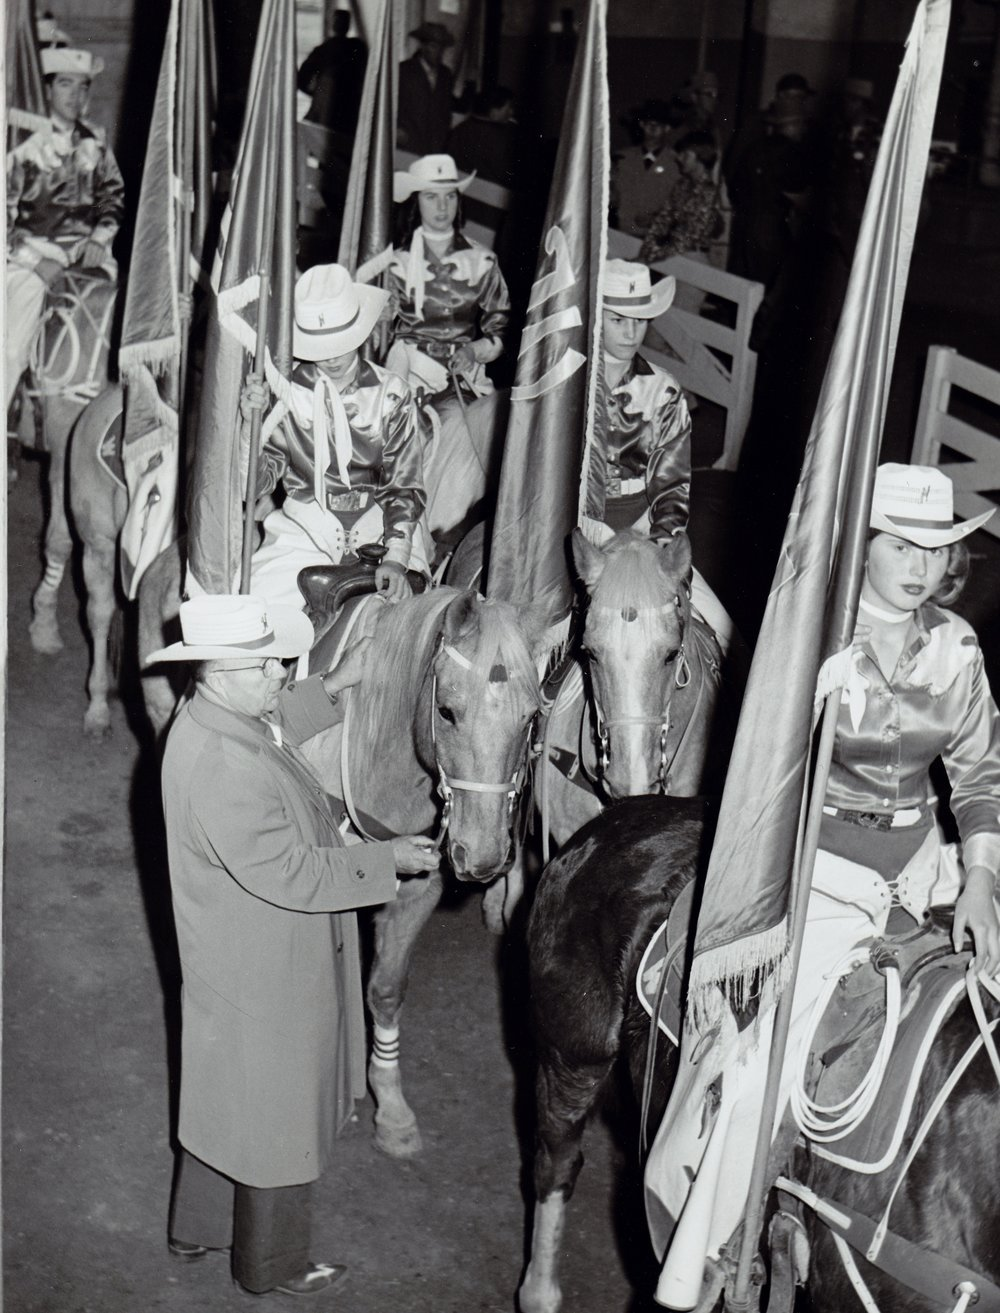 Westernaires founder and Director, Elmer E. Wyland, stands with the lined-up Grand Entry riders in the paddock of the 1961 National Western Stock Show. Jody Williford is on the far right.